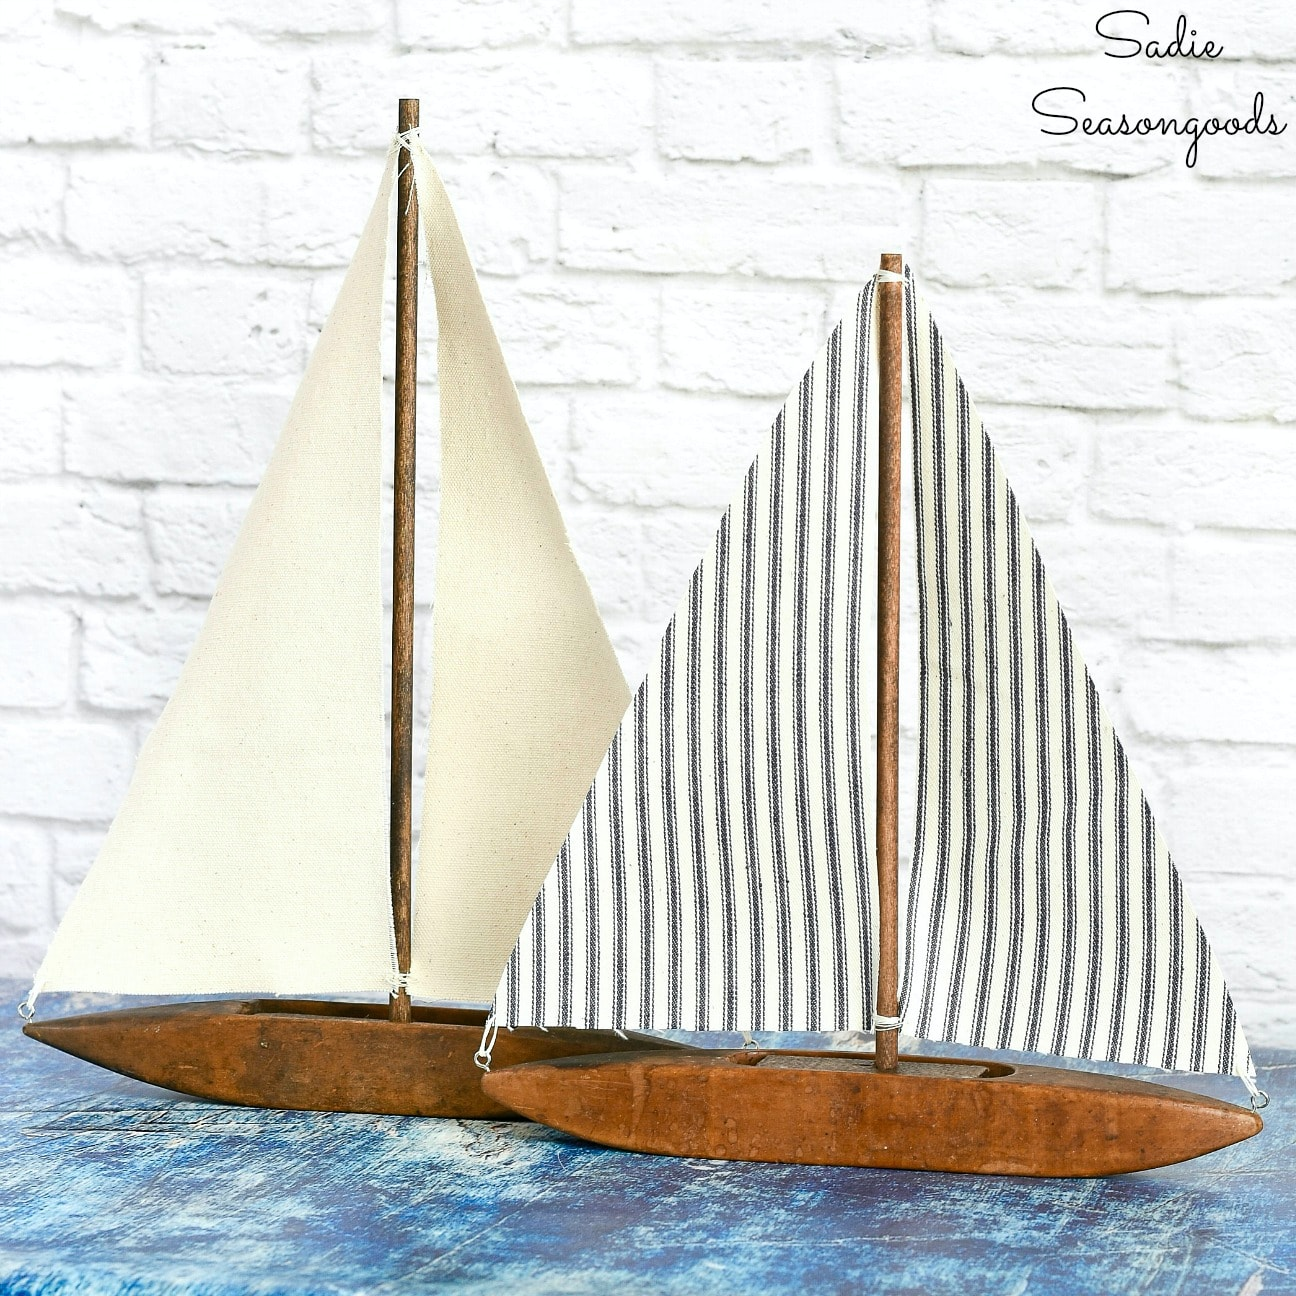 Upcycled weaving shuttle sailboats by Sadie Seasongoods, featured on DIY Salvaged Junk Projects 539 on Funky Junk!